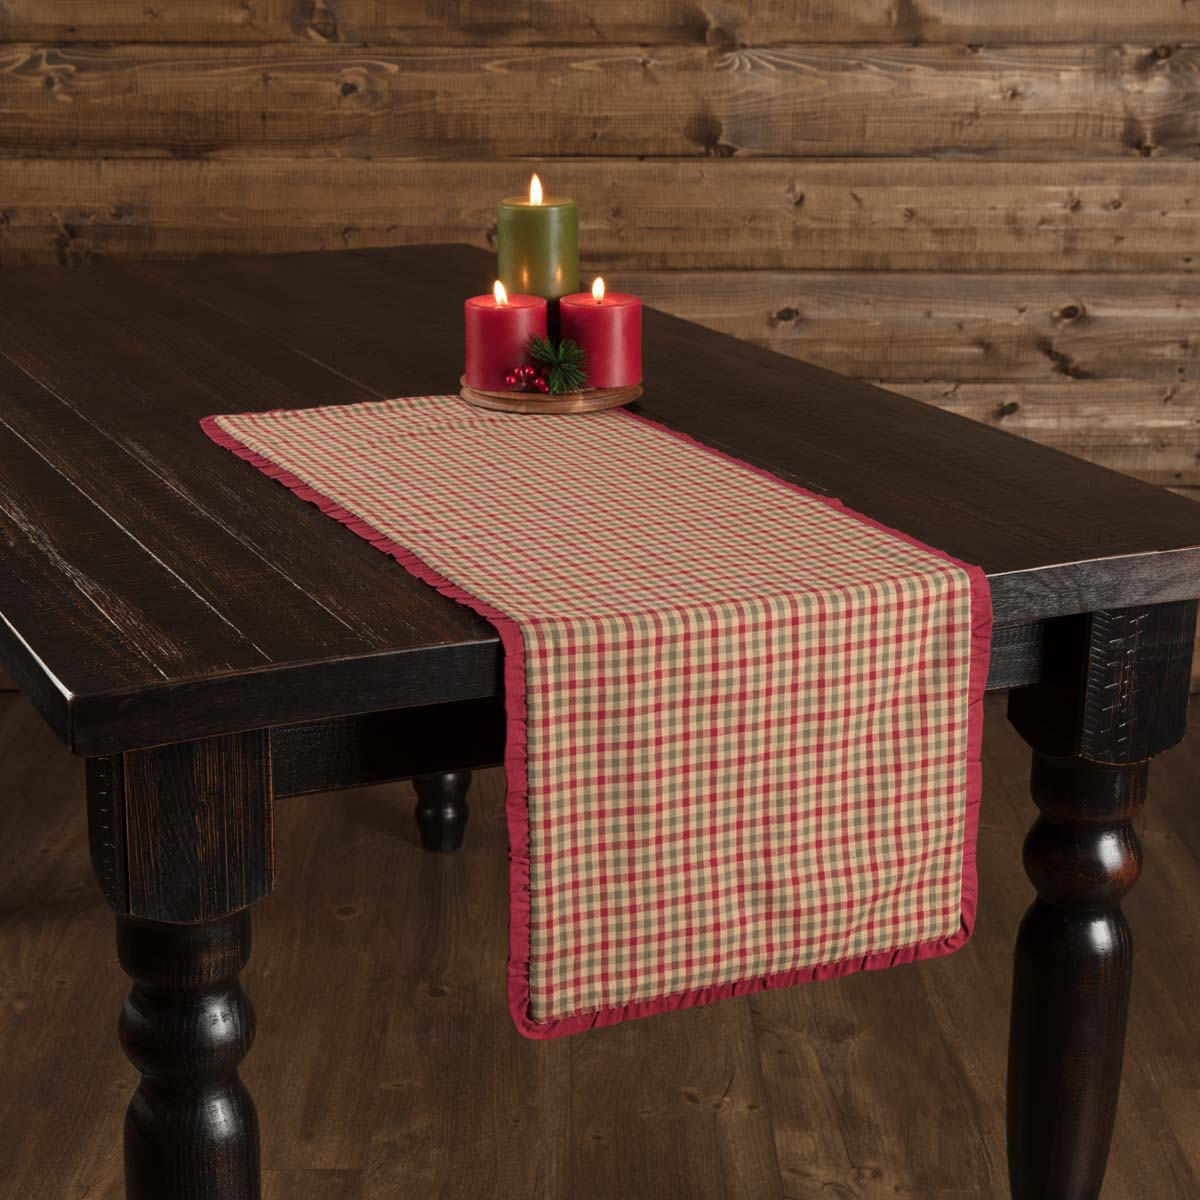 Jonathan Plaid Ruffled Runner